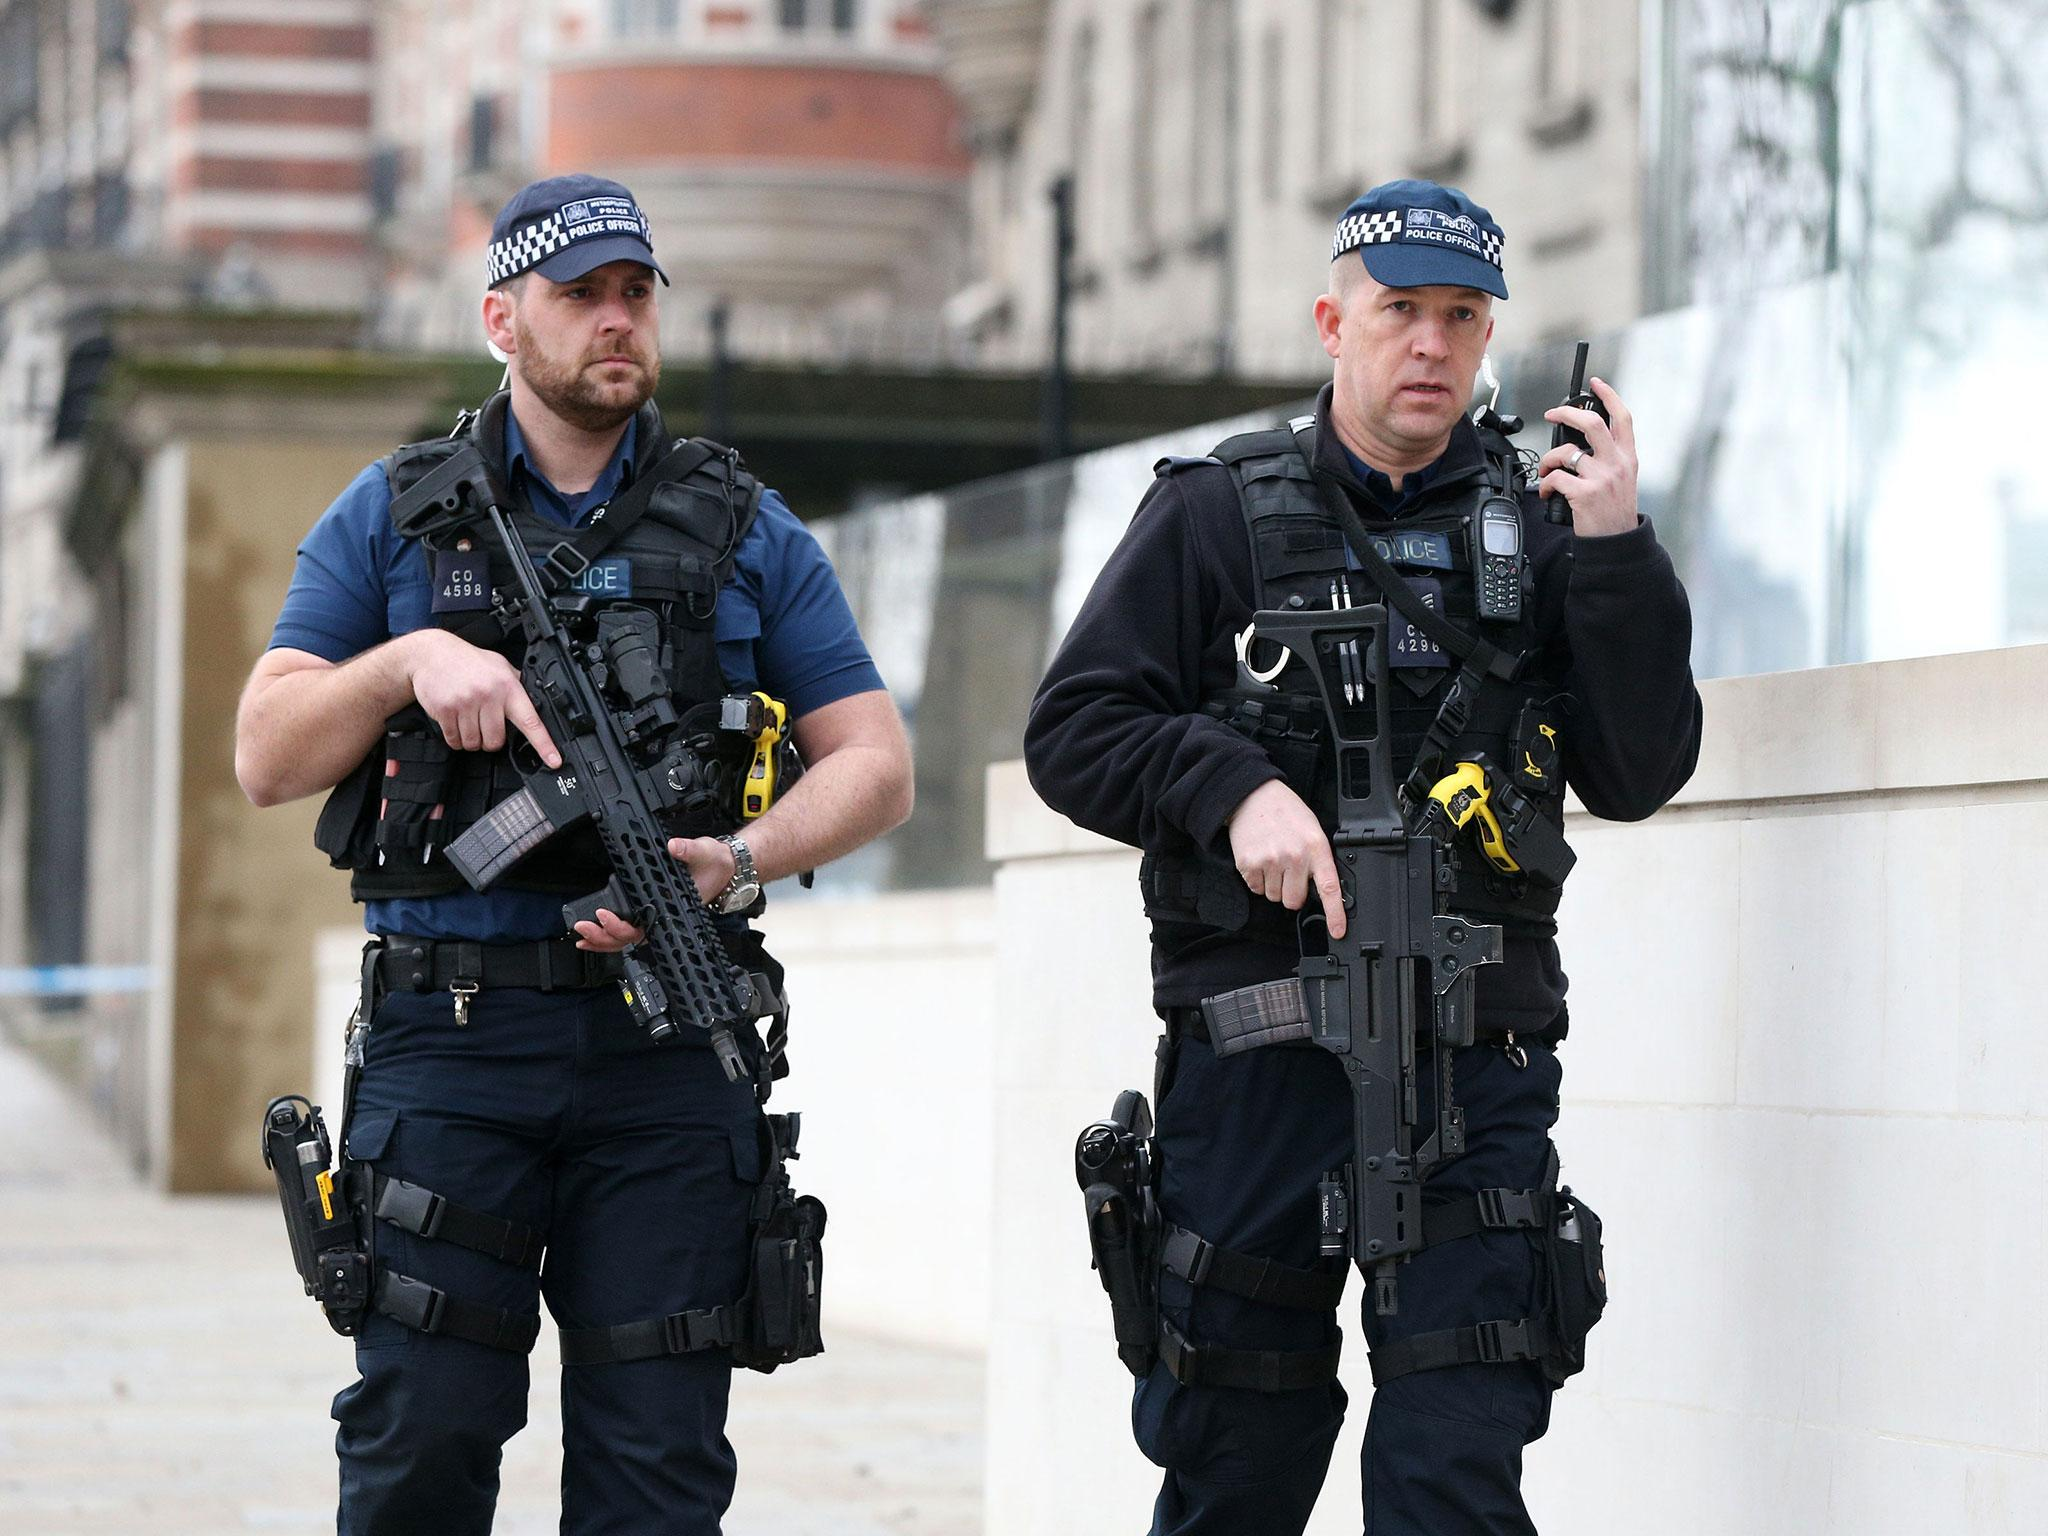 British police could be 'routinely armed' to respond to terror threat in rural areas